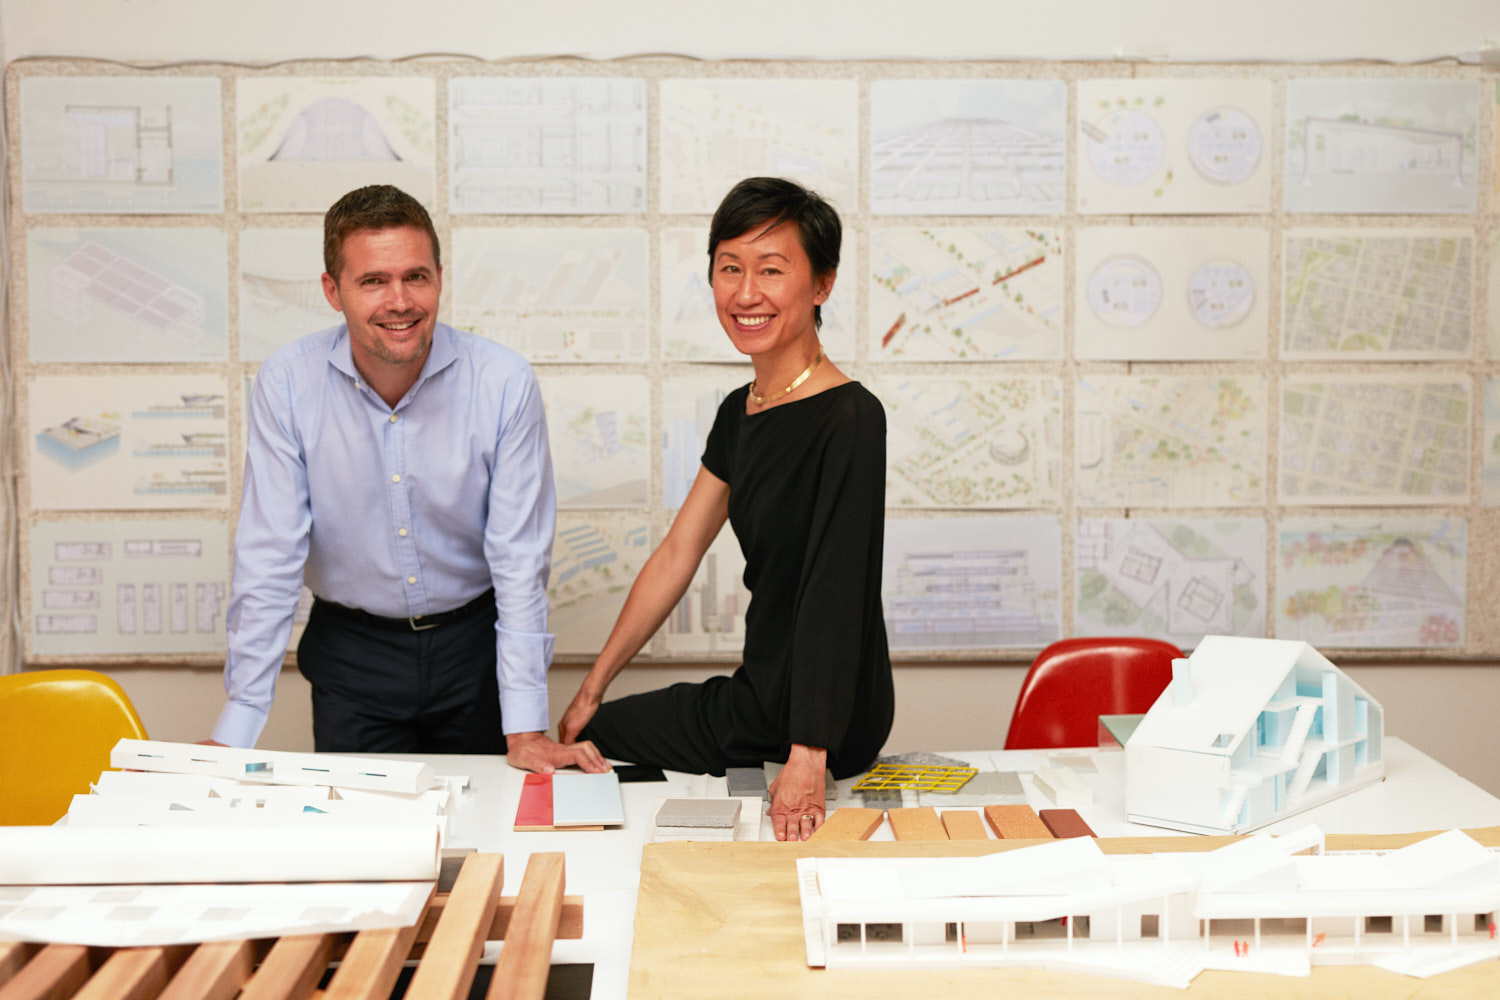 Creative Business Portrait of Female Architect and nArchitects Founder in Brooklyn Dumbo Office